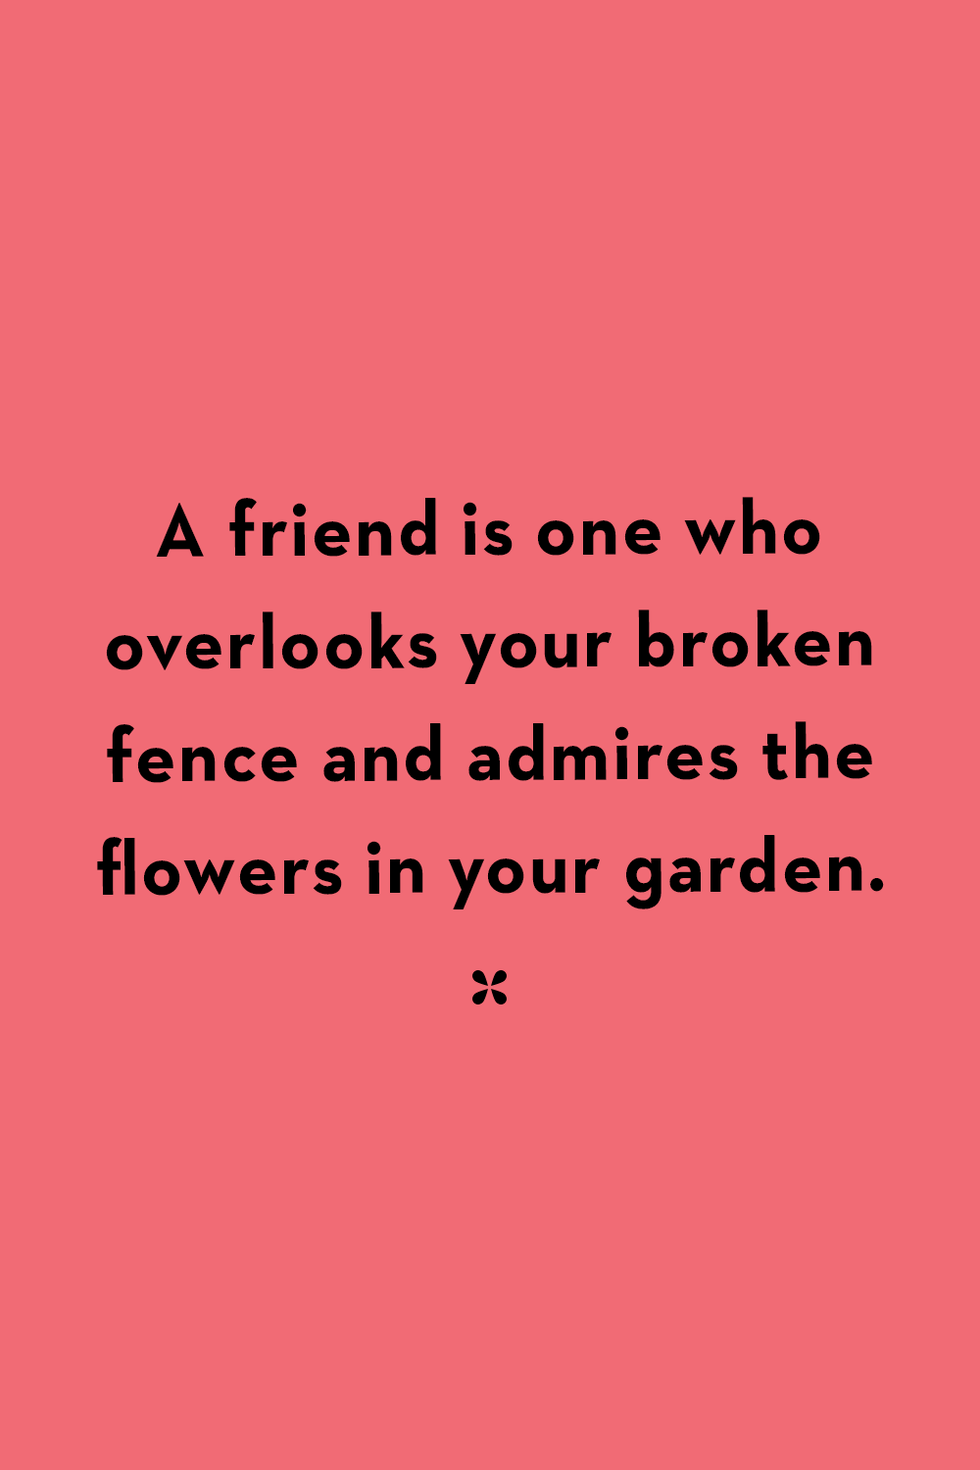 friendship-day-quotes-17